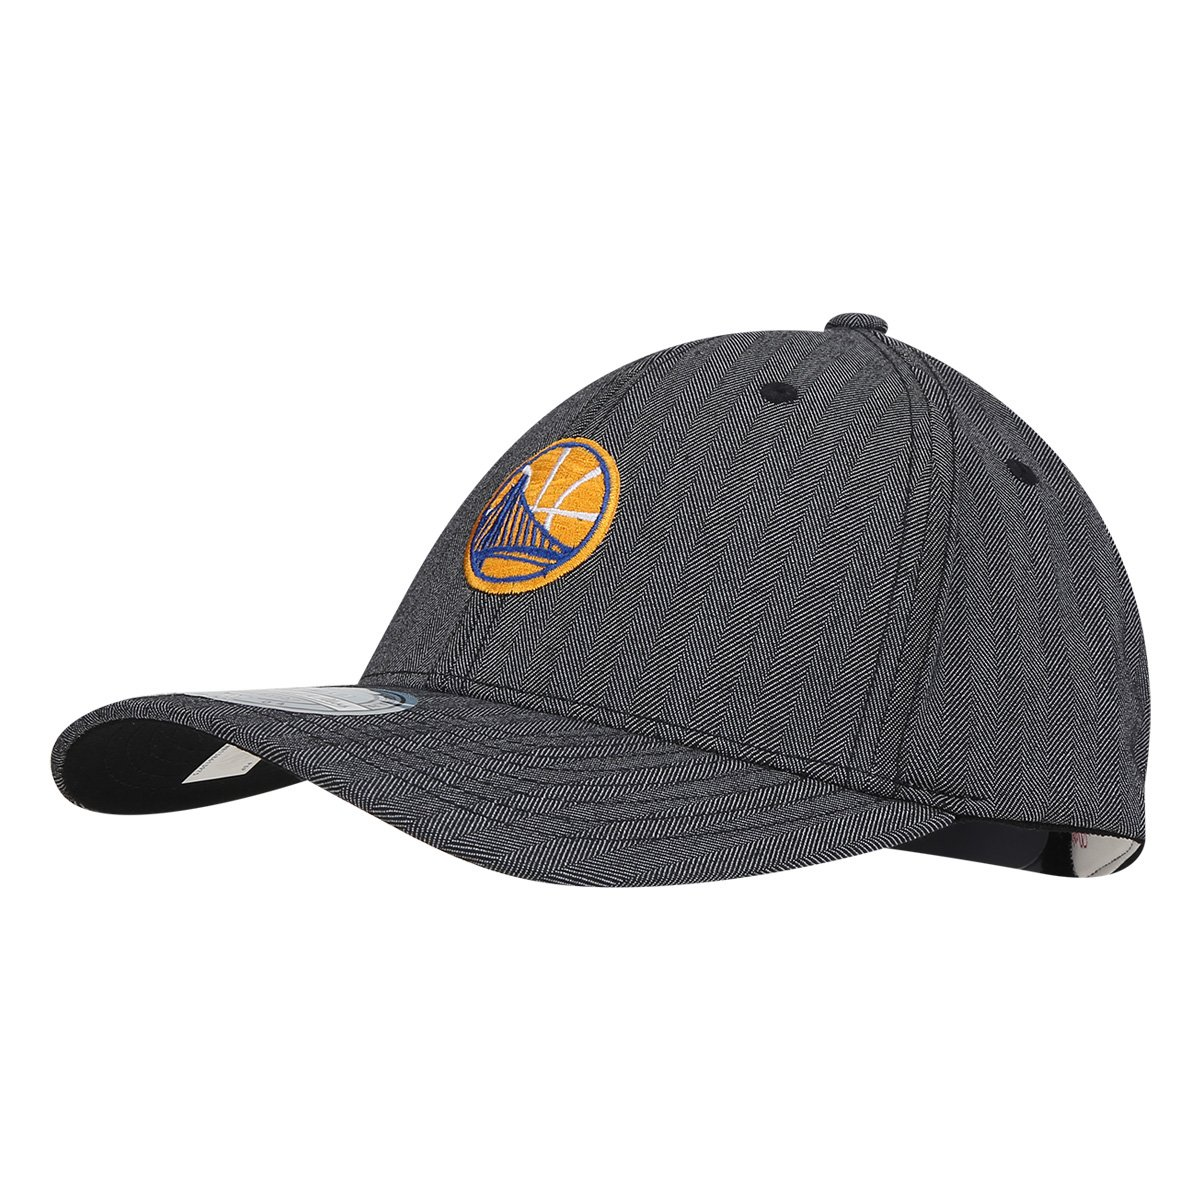 Boné Mitchell   Ness NBA Golden State Warriors Aba Curva - Cinza ... 91434c7dd505d